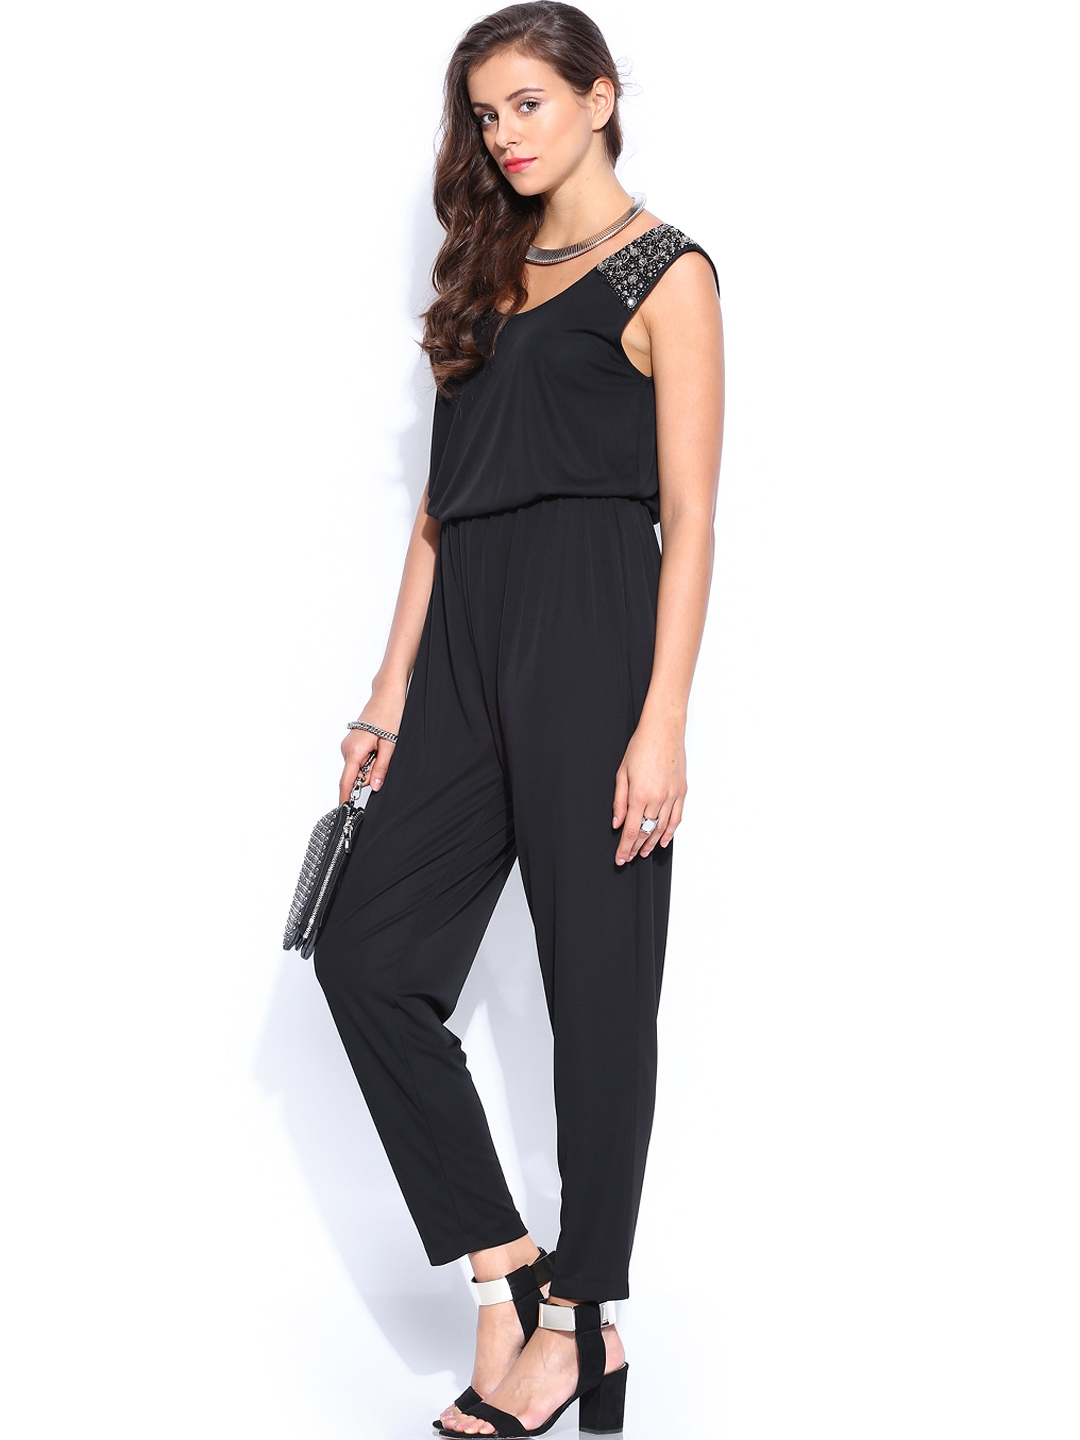 Creative MANGO Women Black Graffiti Jumpsuit 433644  Buy Myntra MANGO Jumpsuit